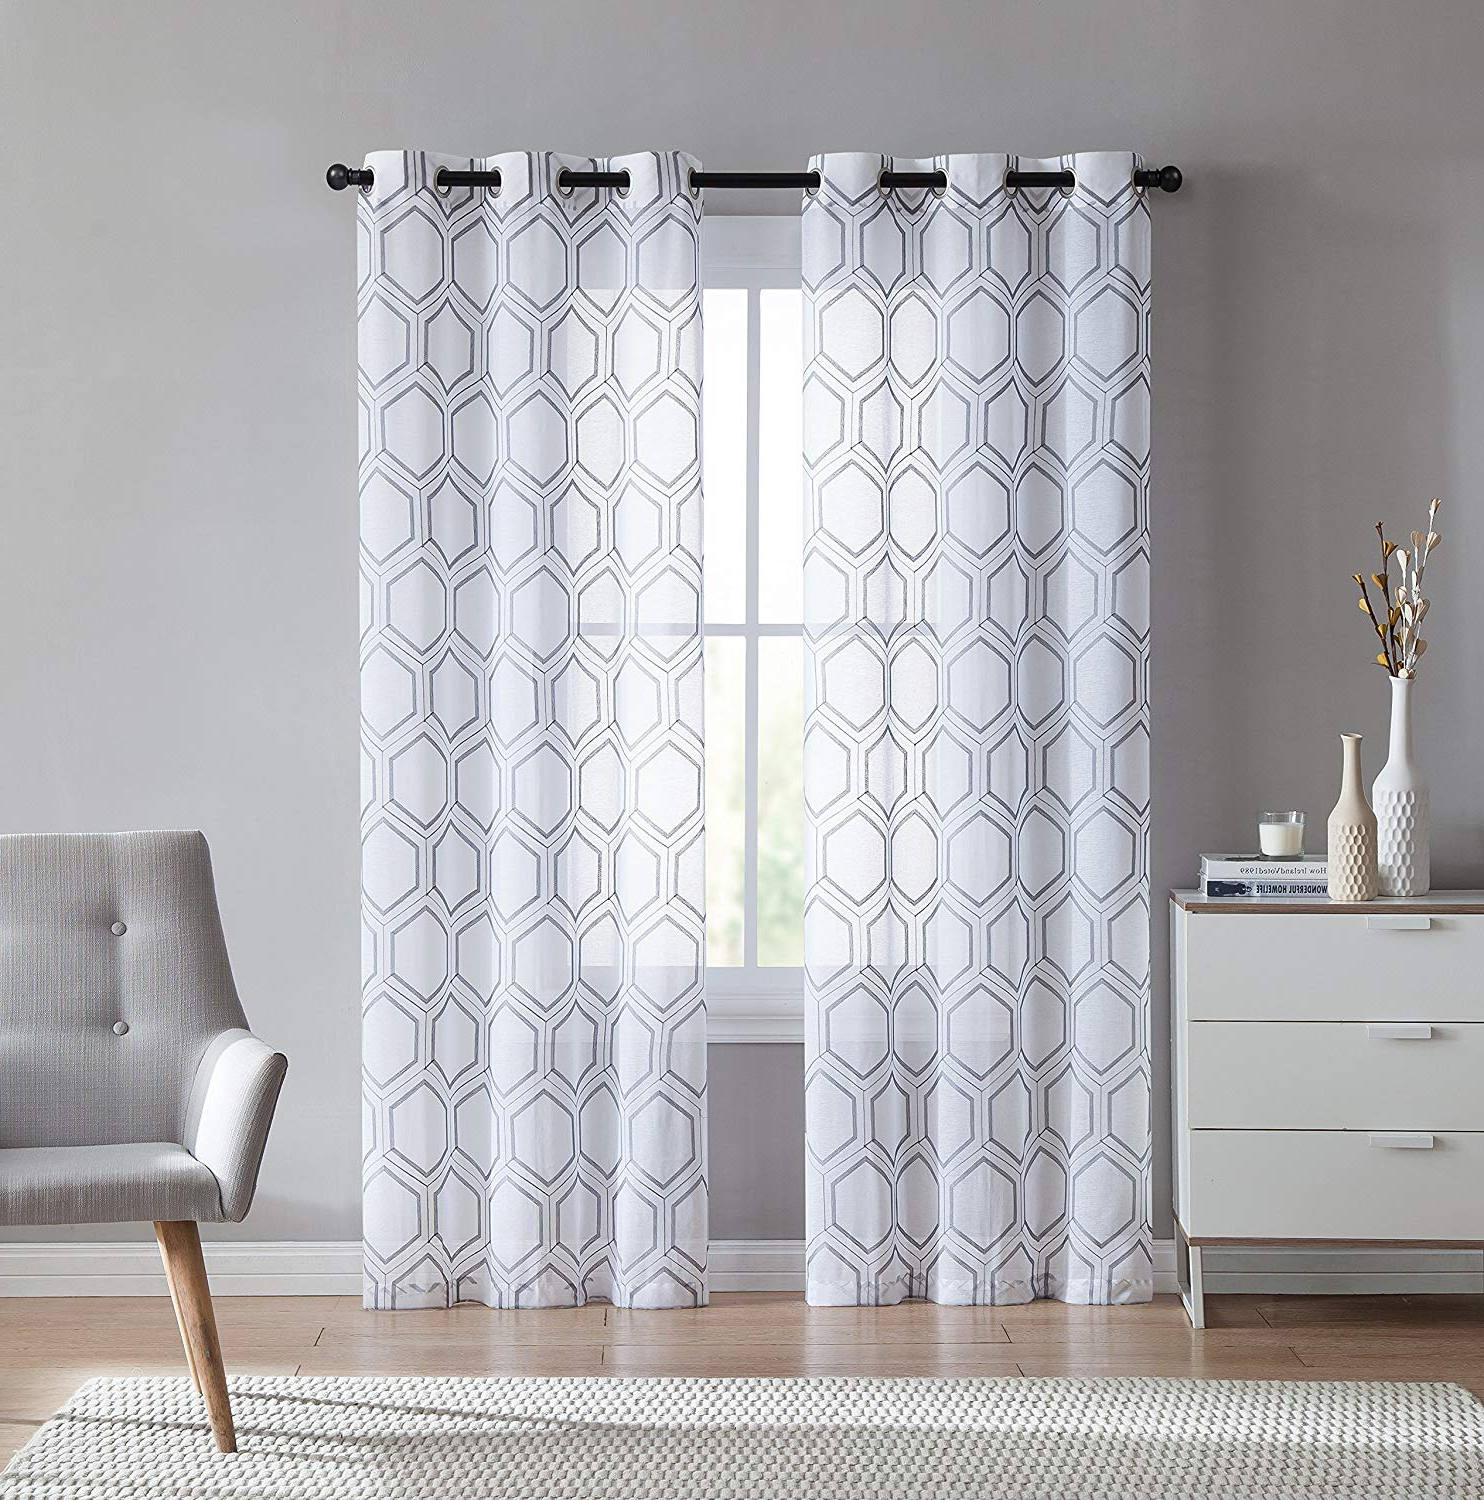 Caldwell Curtain Panel Pairs With Regard To Widely Used Amazon: Vcny Home Empire Window Curtains Panel Pair (View 6 of 20)